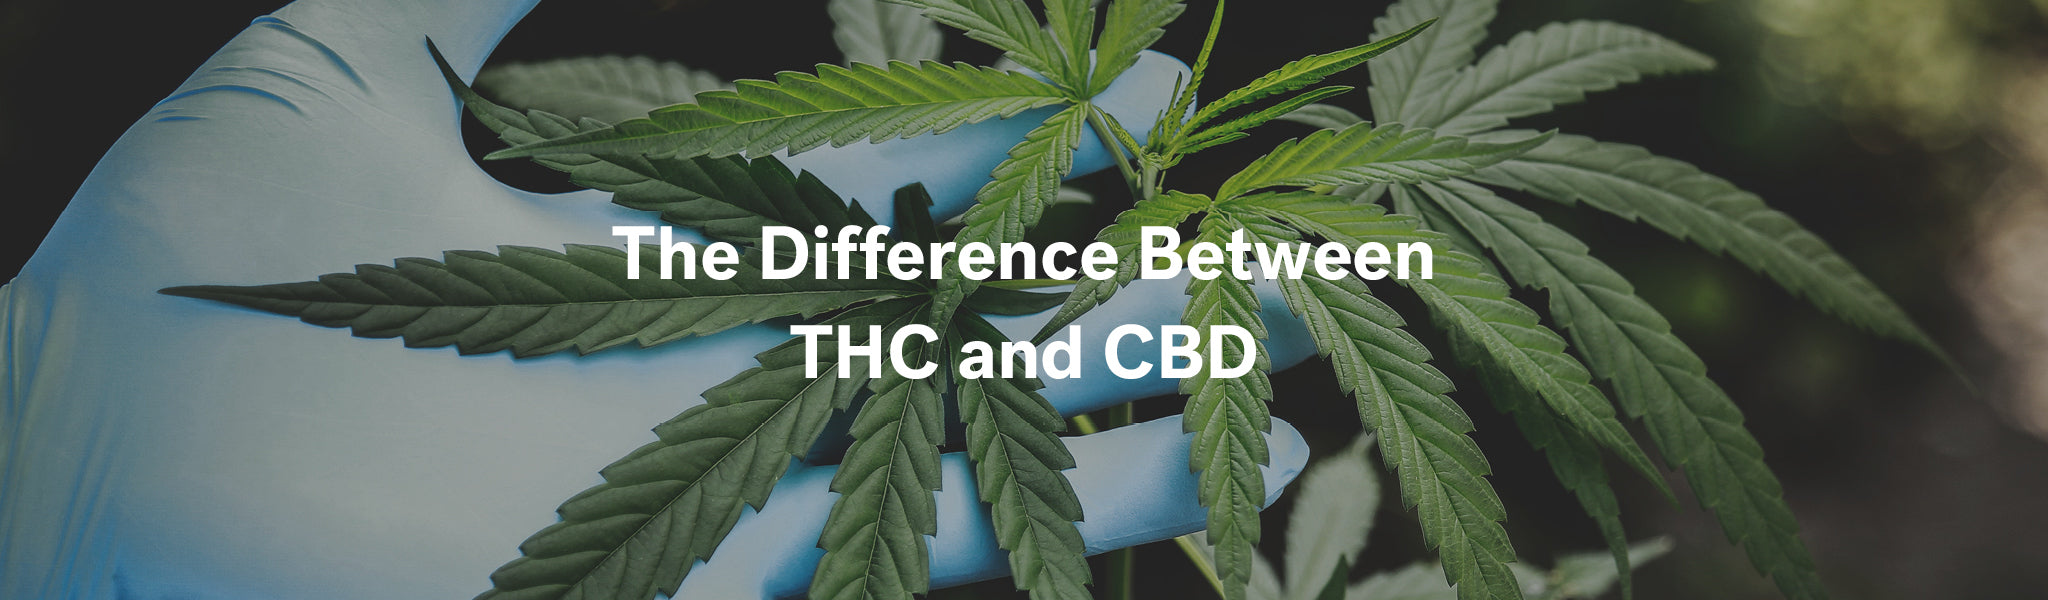 The Difference Between THC and CBD